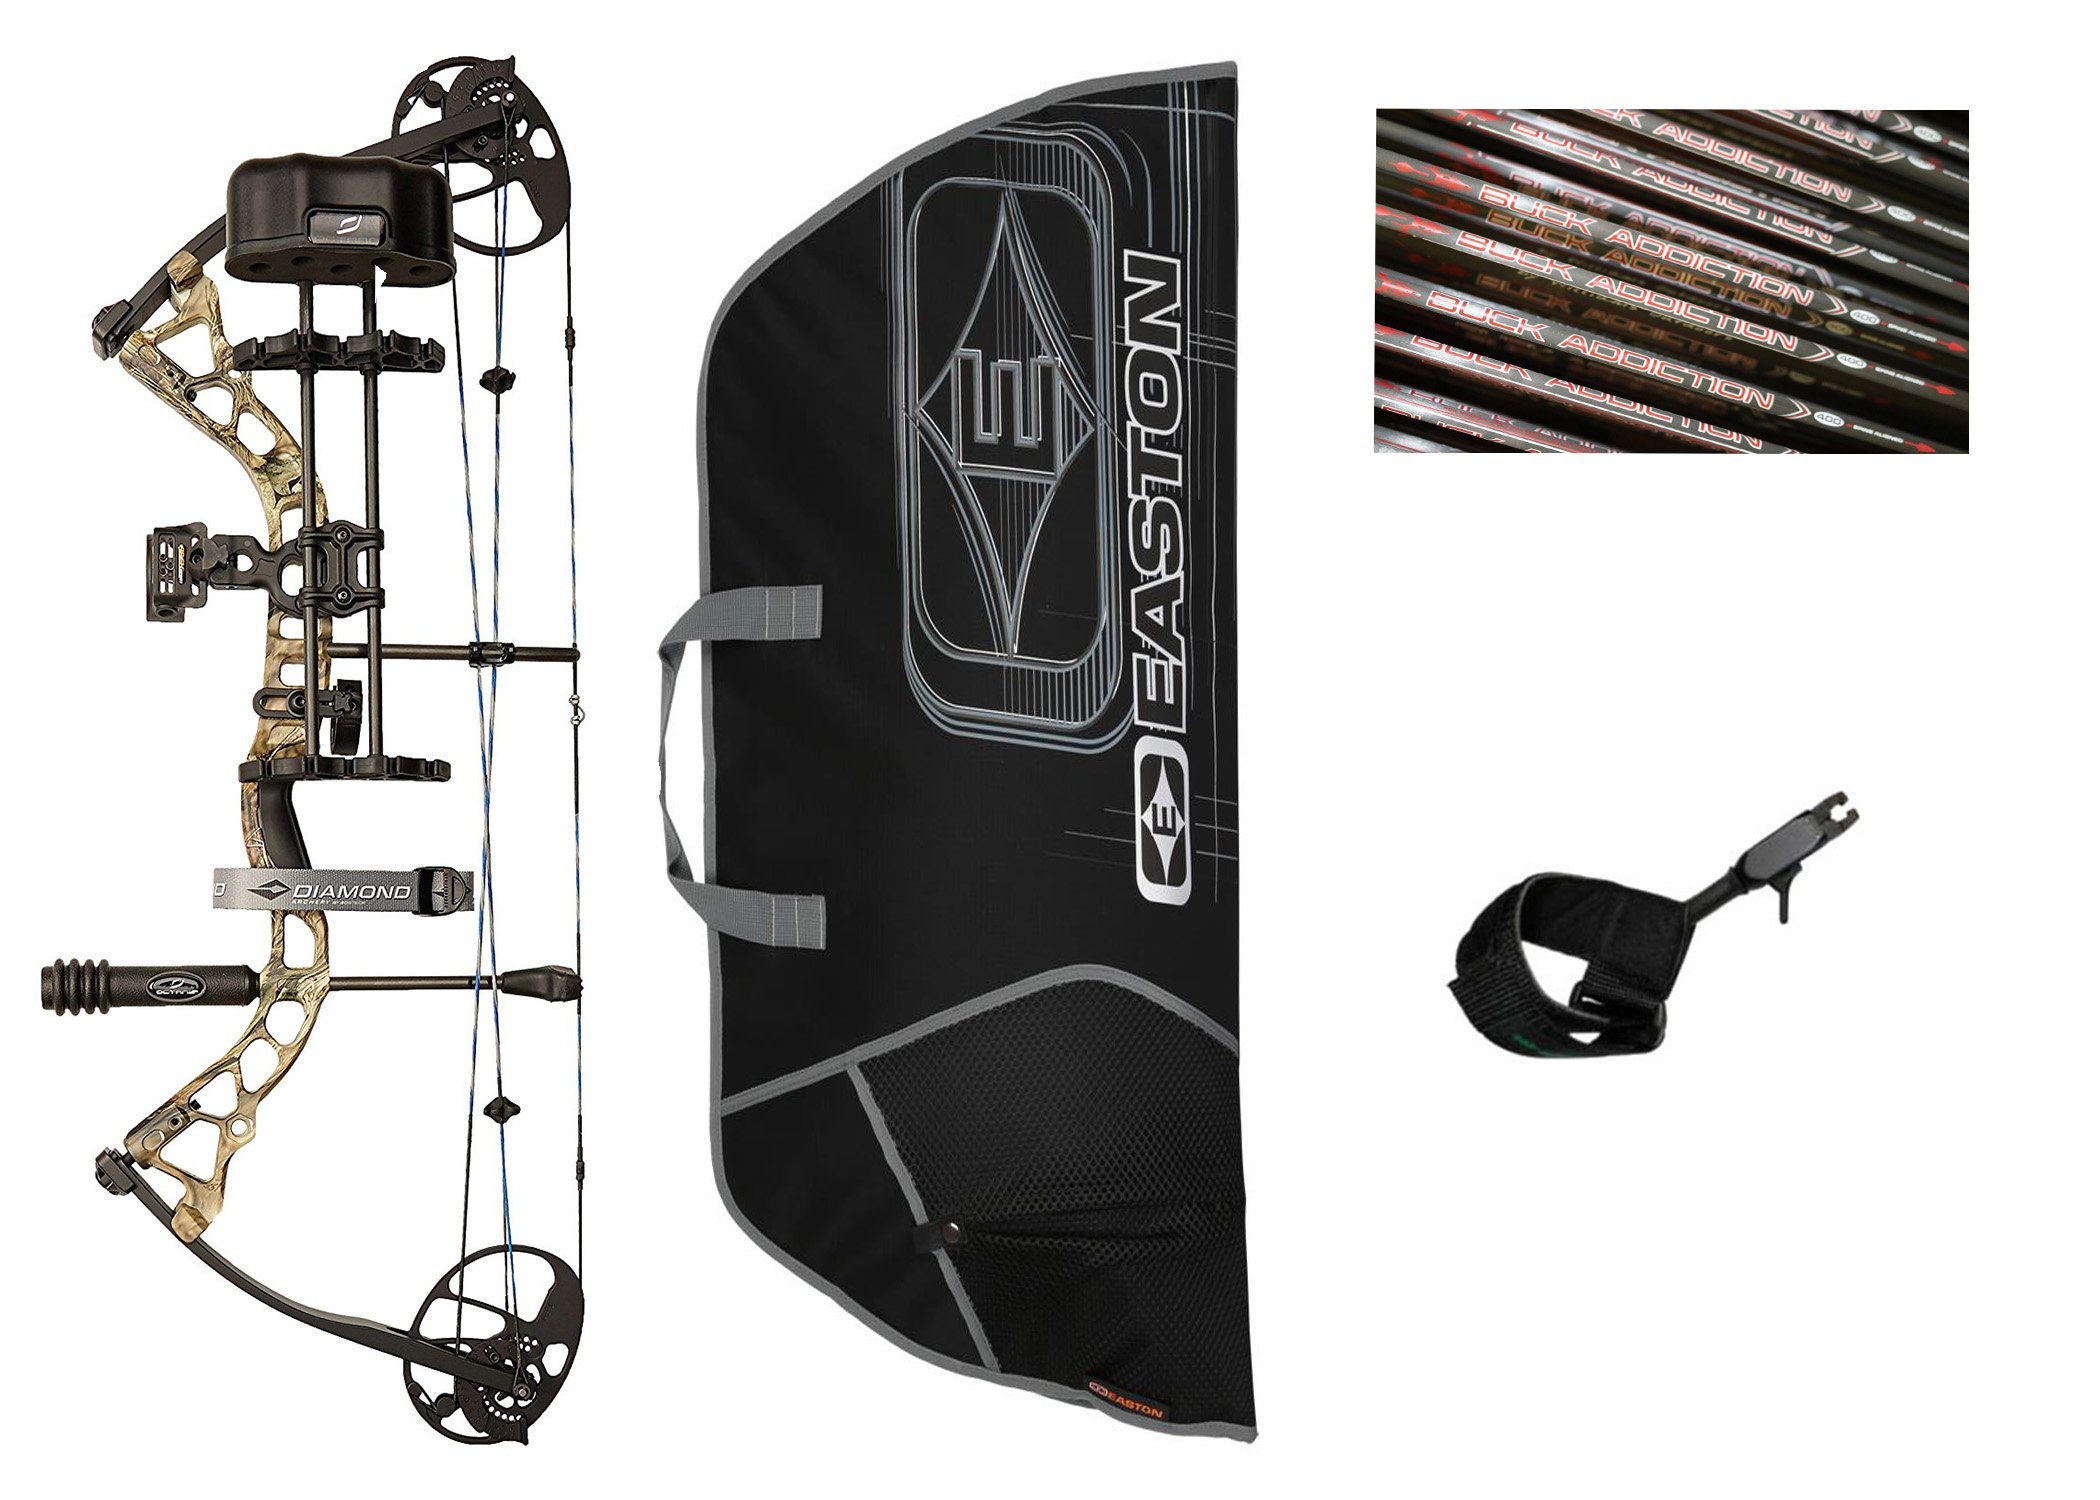 Diamond Infinite Edge Pro Compound Bow, Camo, Right Hand, Ready to Hunt Package